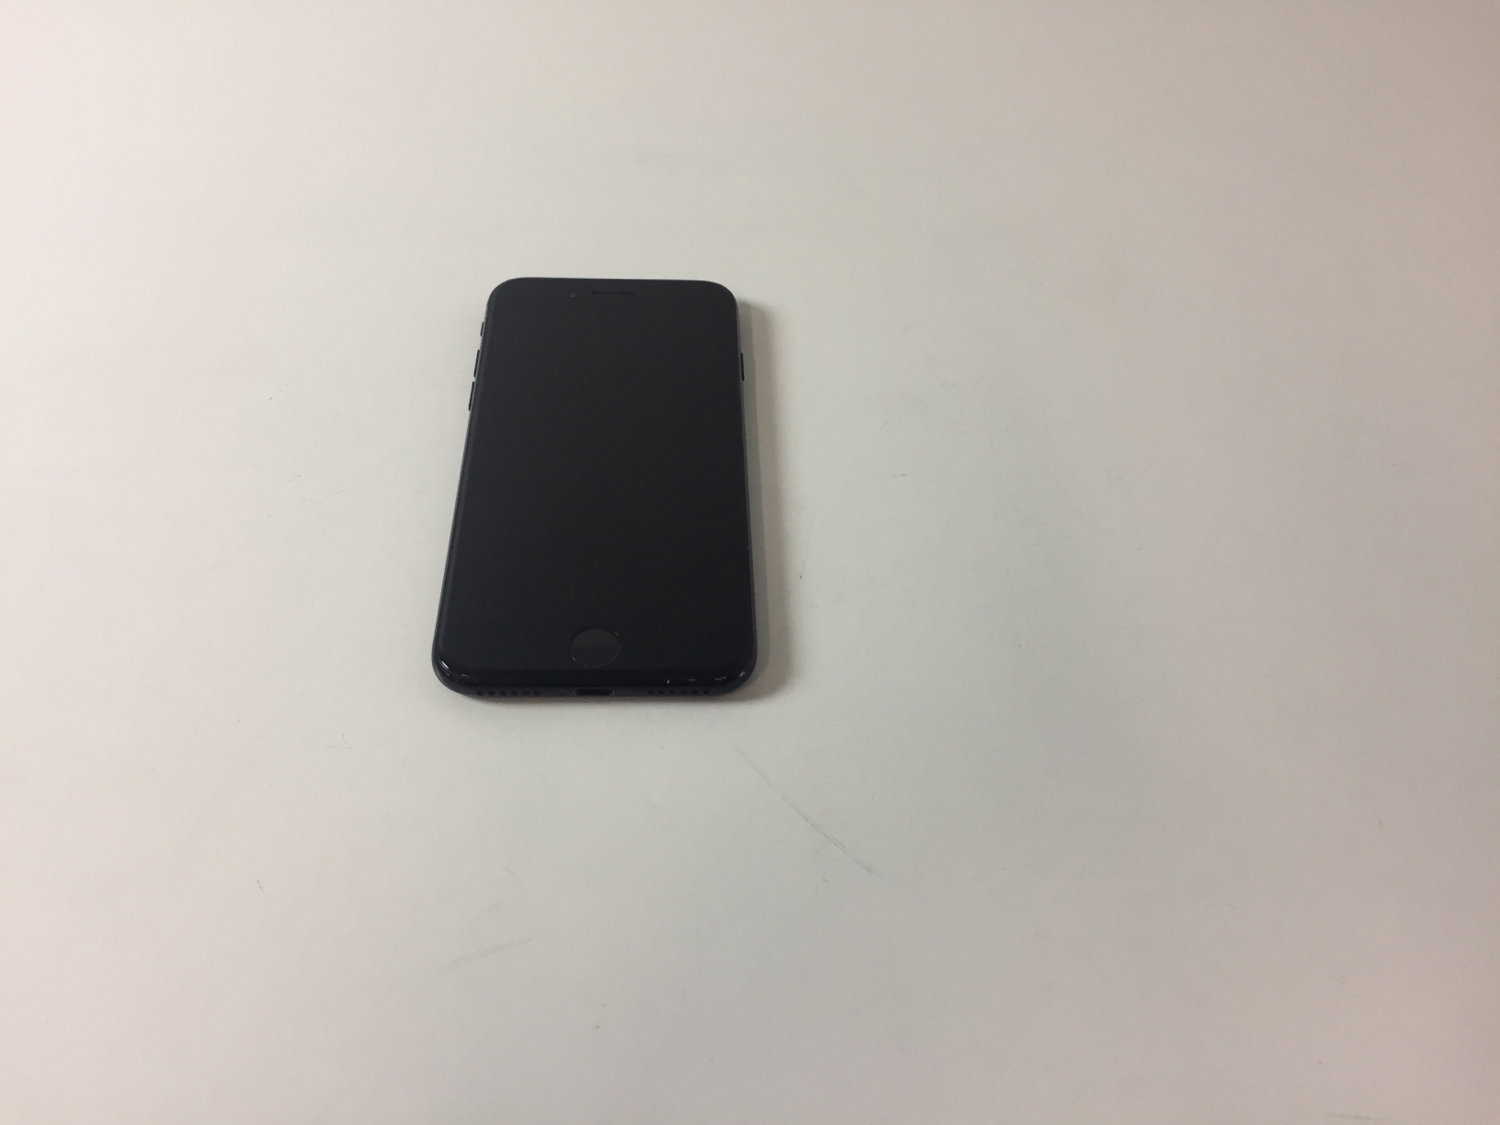 iPhone 7 128GB, 128GB, Jet Black, bild 2